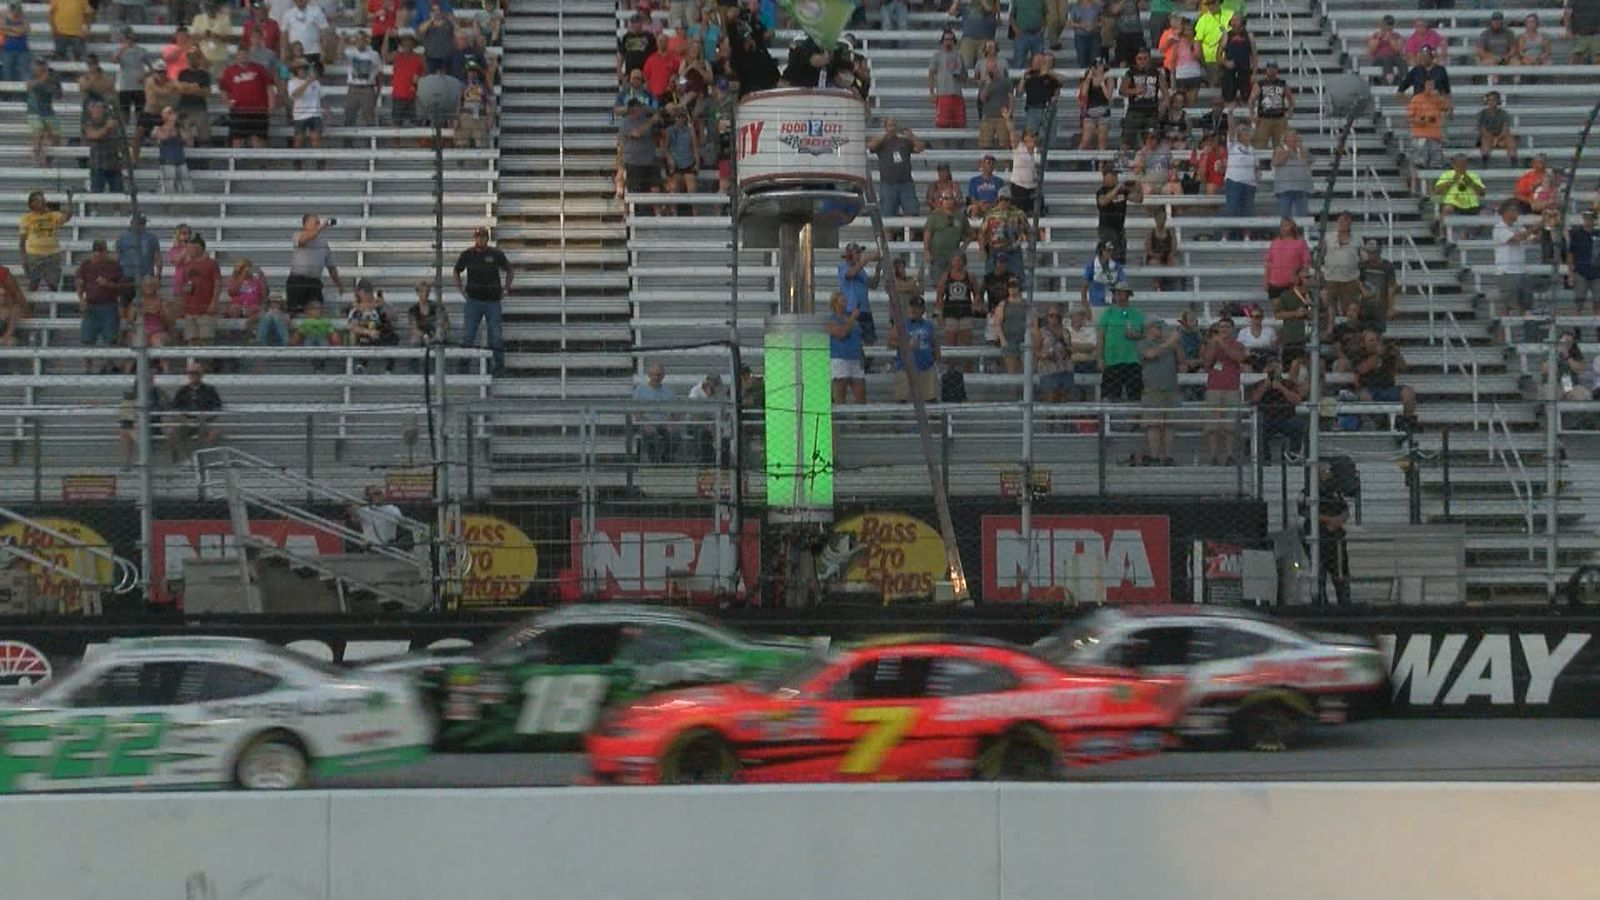 #7 Justin Allgaier is among those taking the green flag for the Food City 300. (WCYB Photo)<p></p>